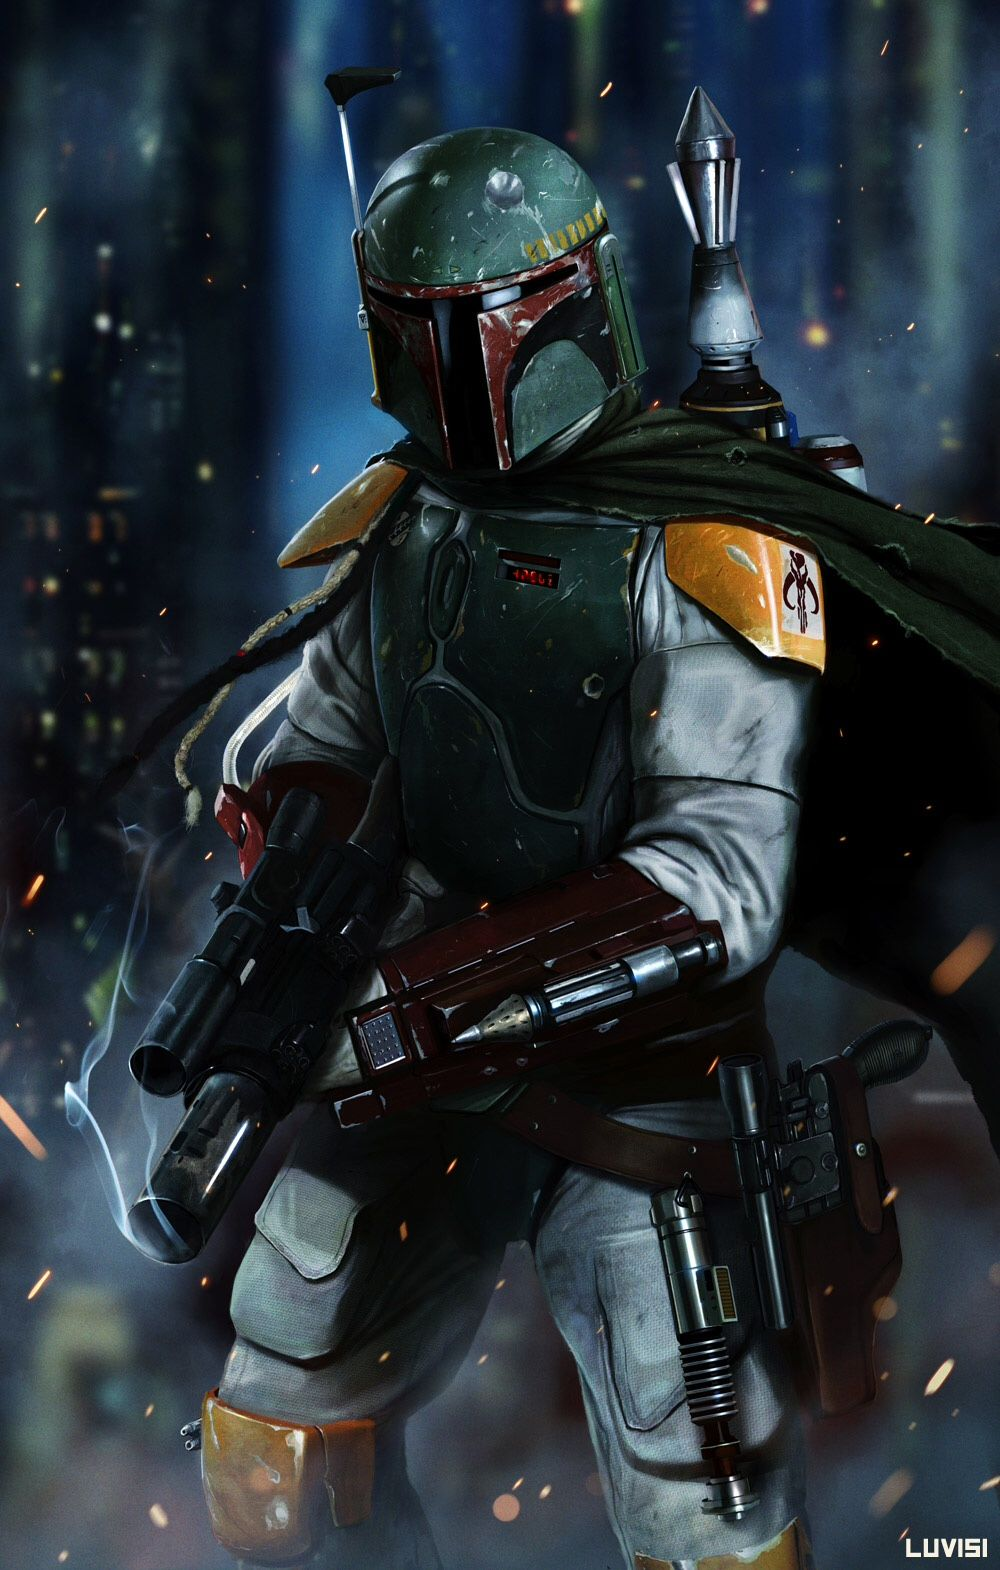 Star Wars Wallpaper Mandalorian Nerd Star Wars